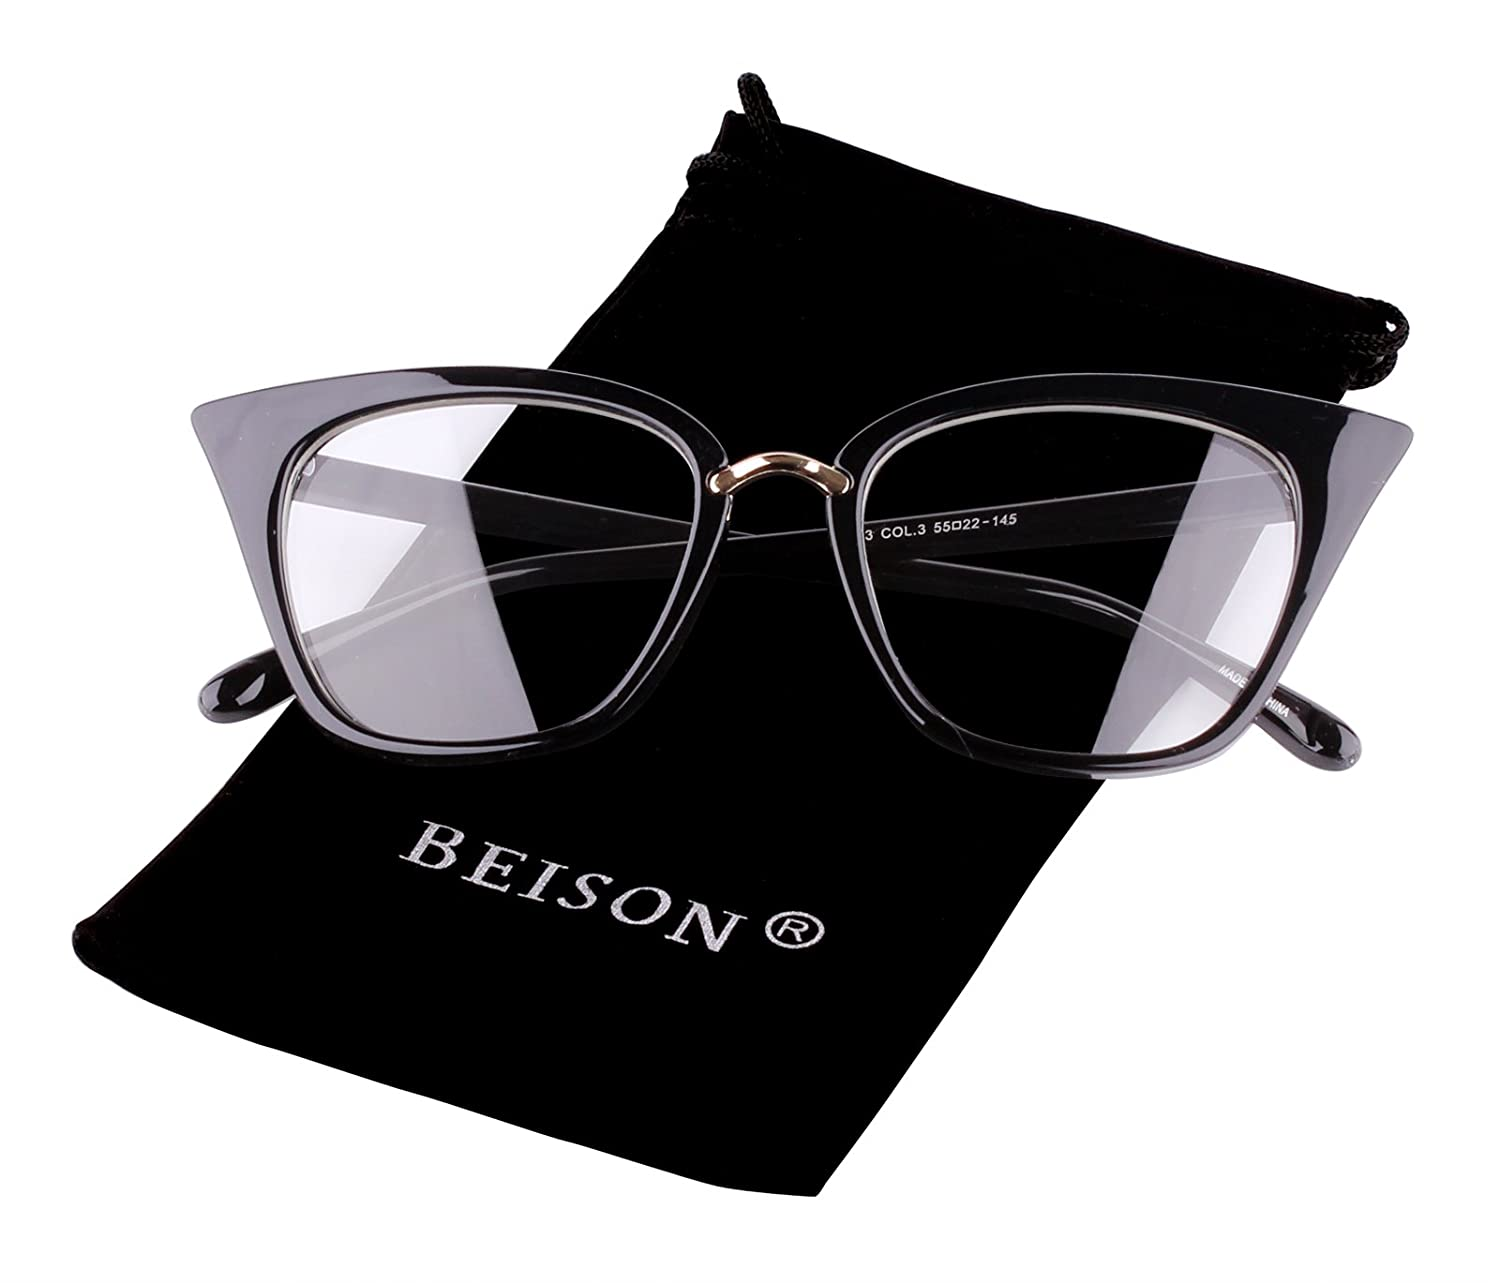 08a39551f8 Stylish classic cateye design fashion eyeglasses for women. PACKAGE  CONTENTS 1x glasses